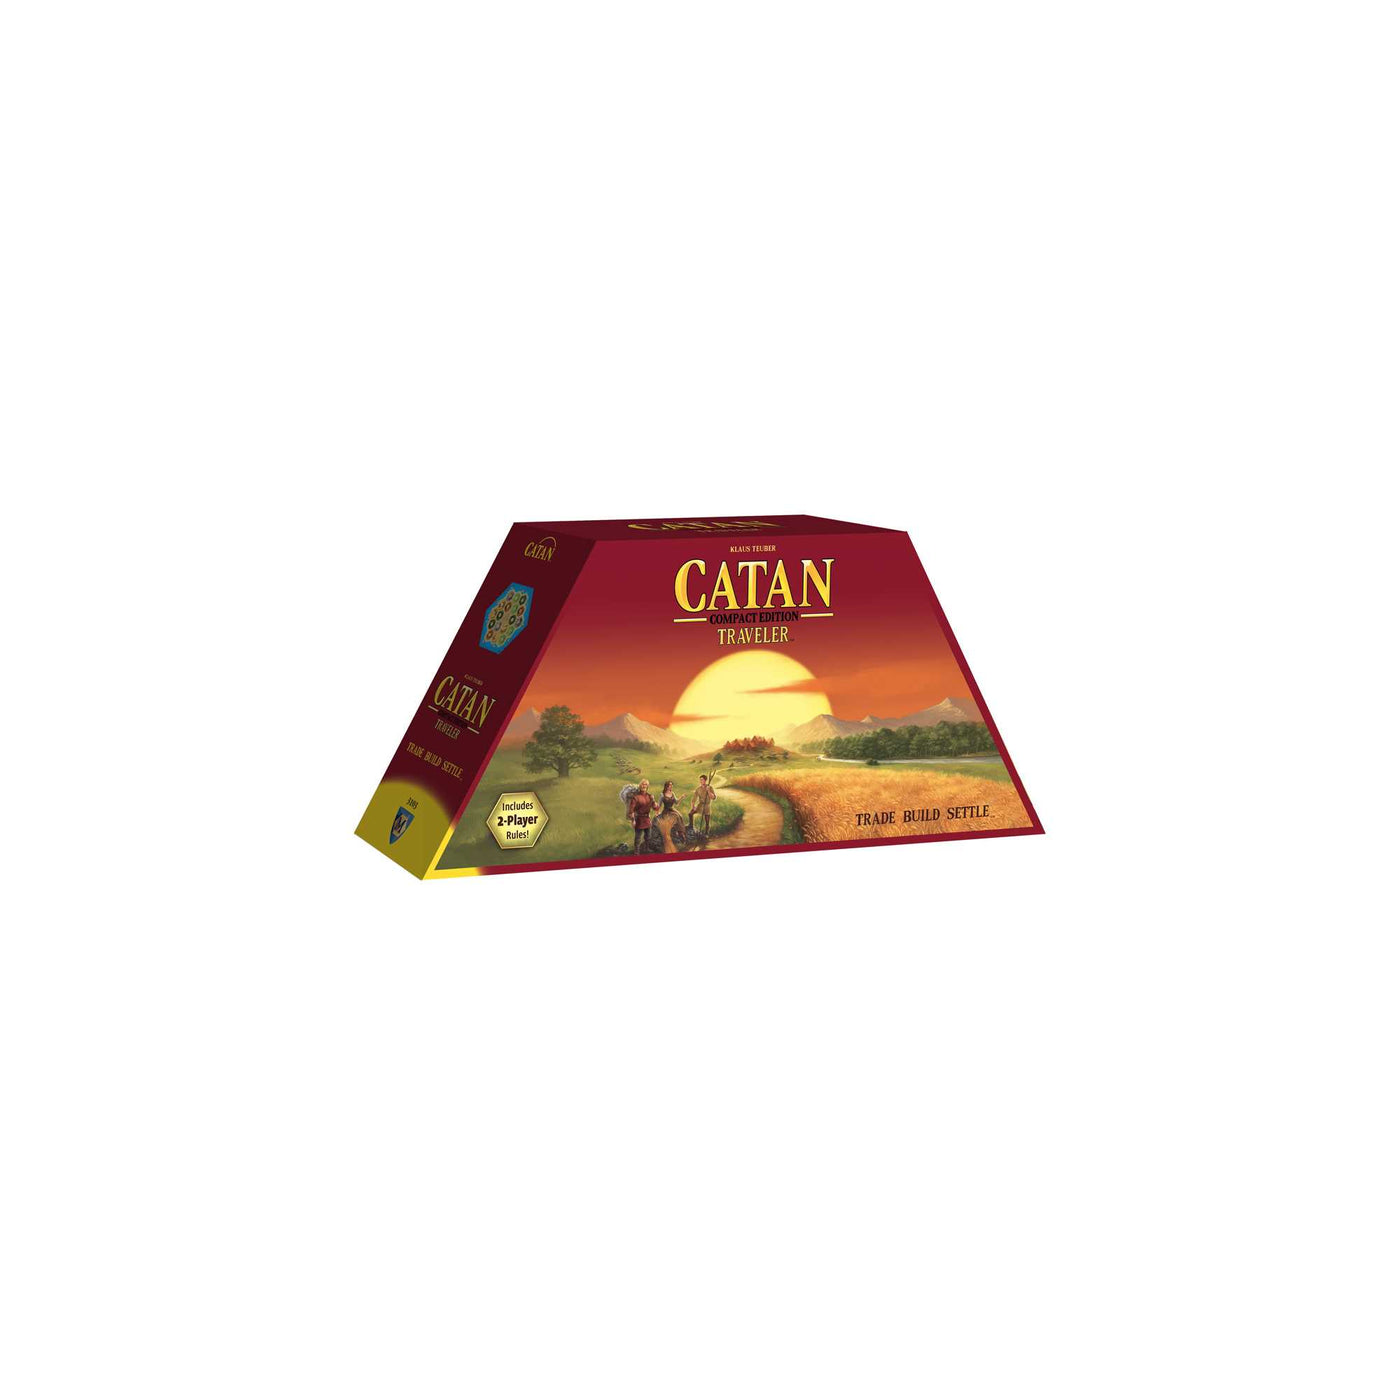 Catan: Traveler Compact Edition